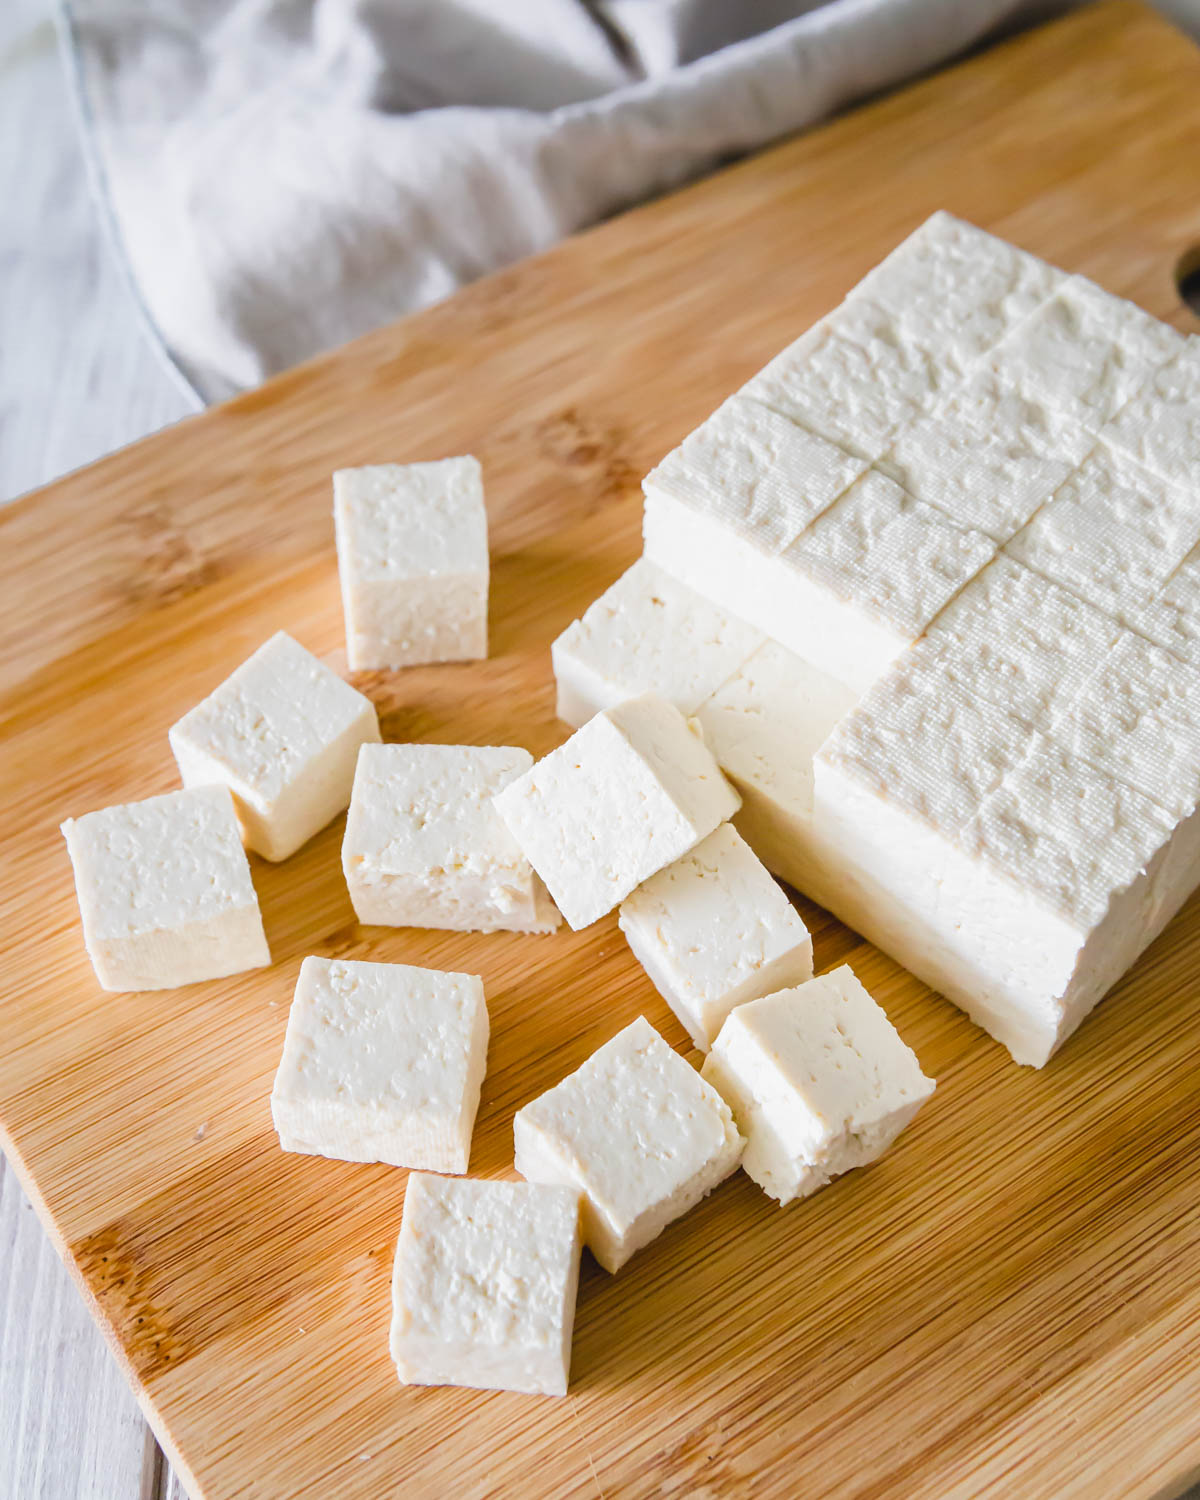 Extra firm tofu, pressed, cut into cubes and ready to be air fried.